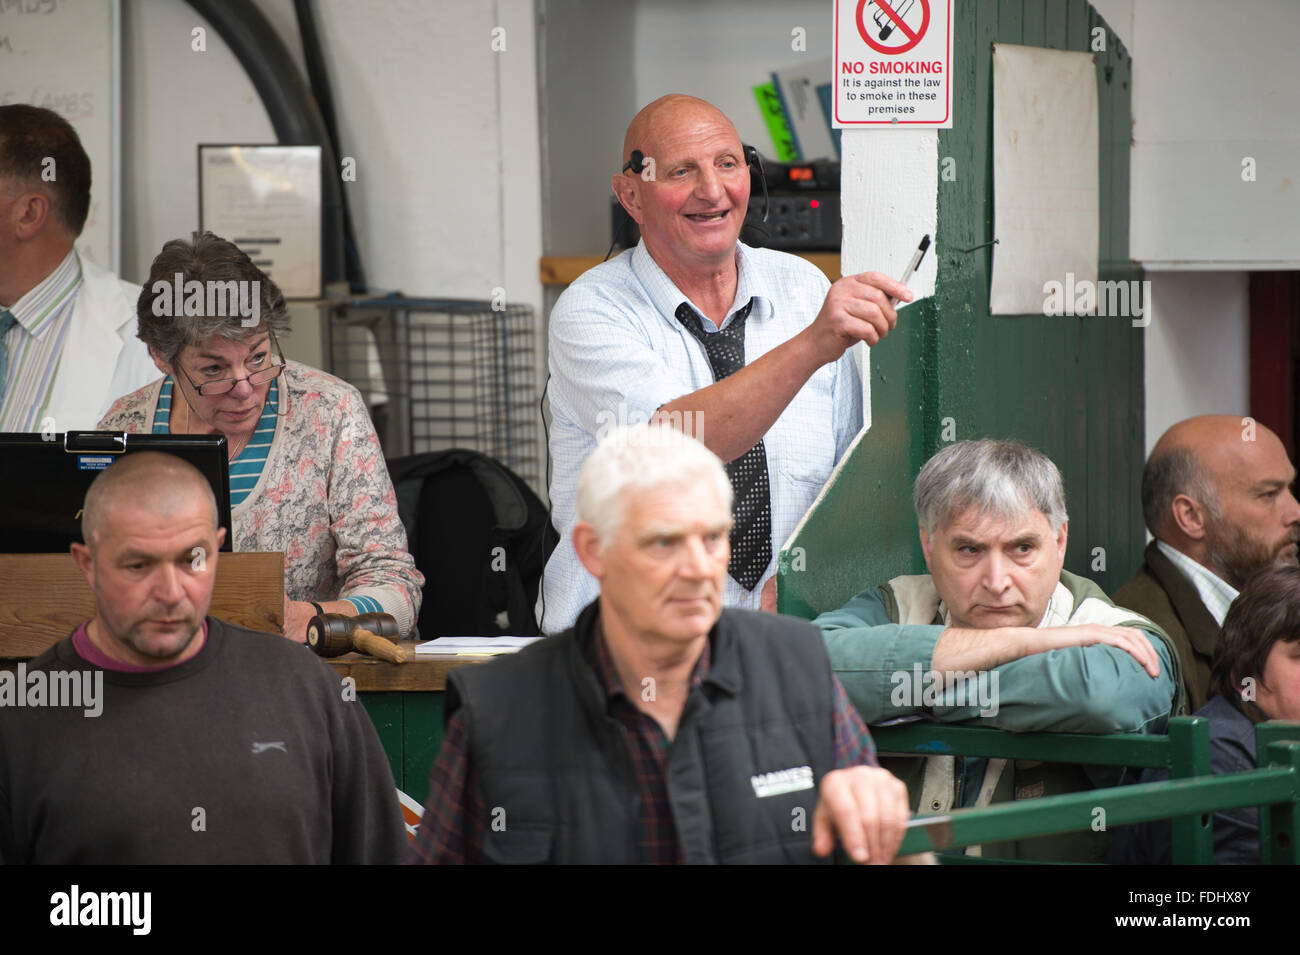 Auctioneer at a Hawes Sheep Auction in Yorkshire, England, UK. - Stock Image